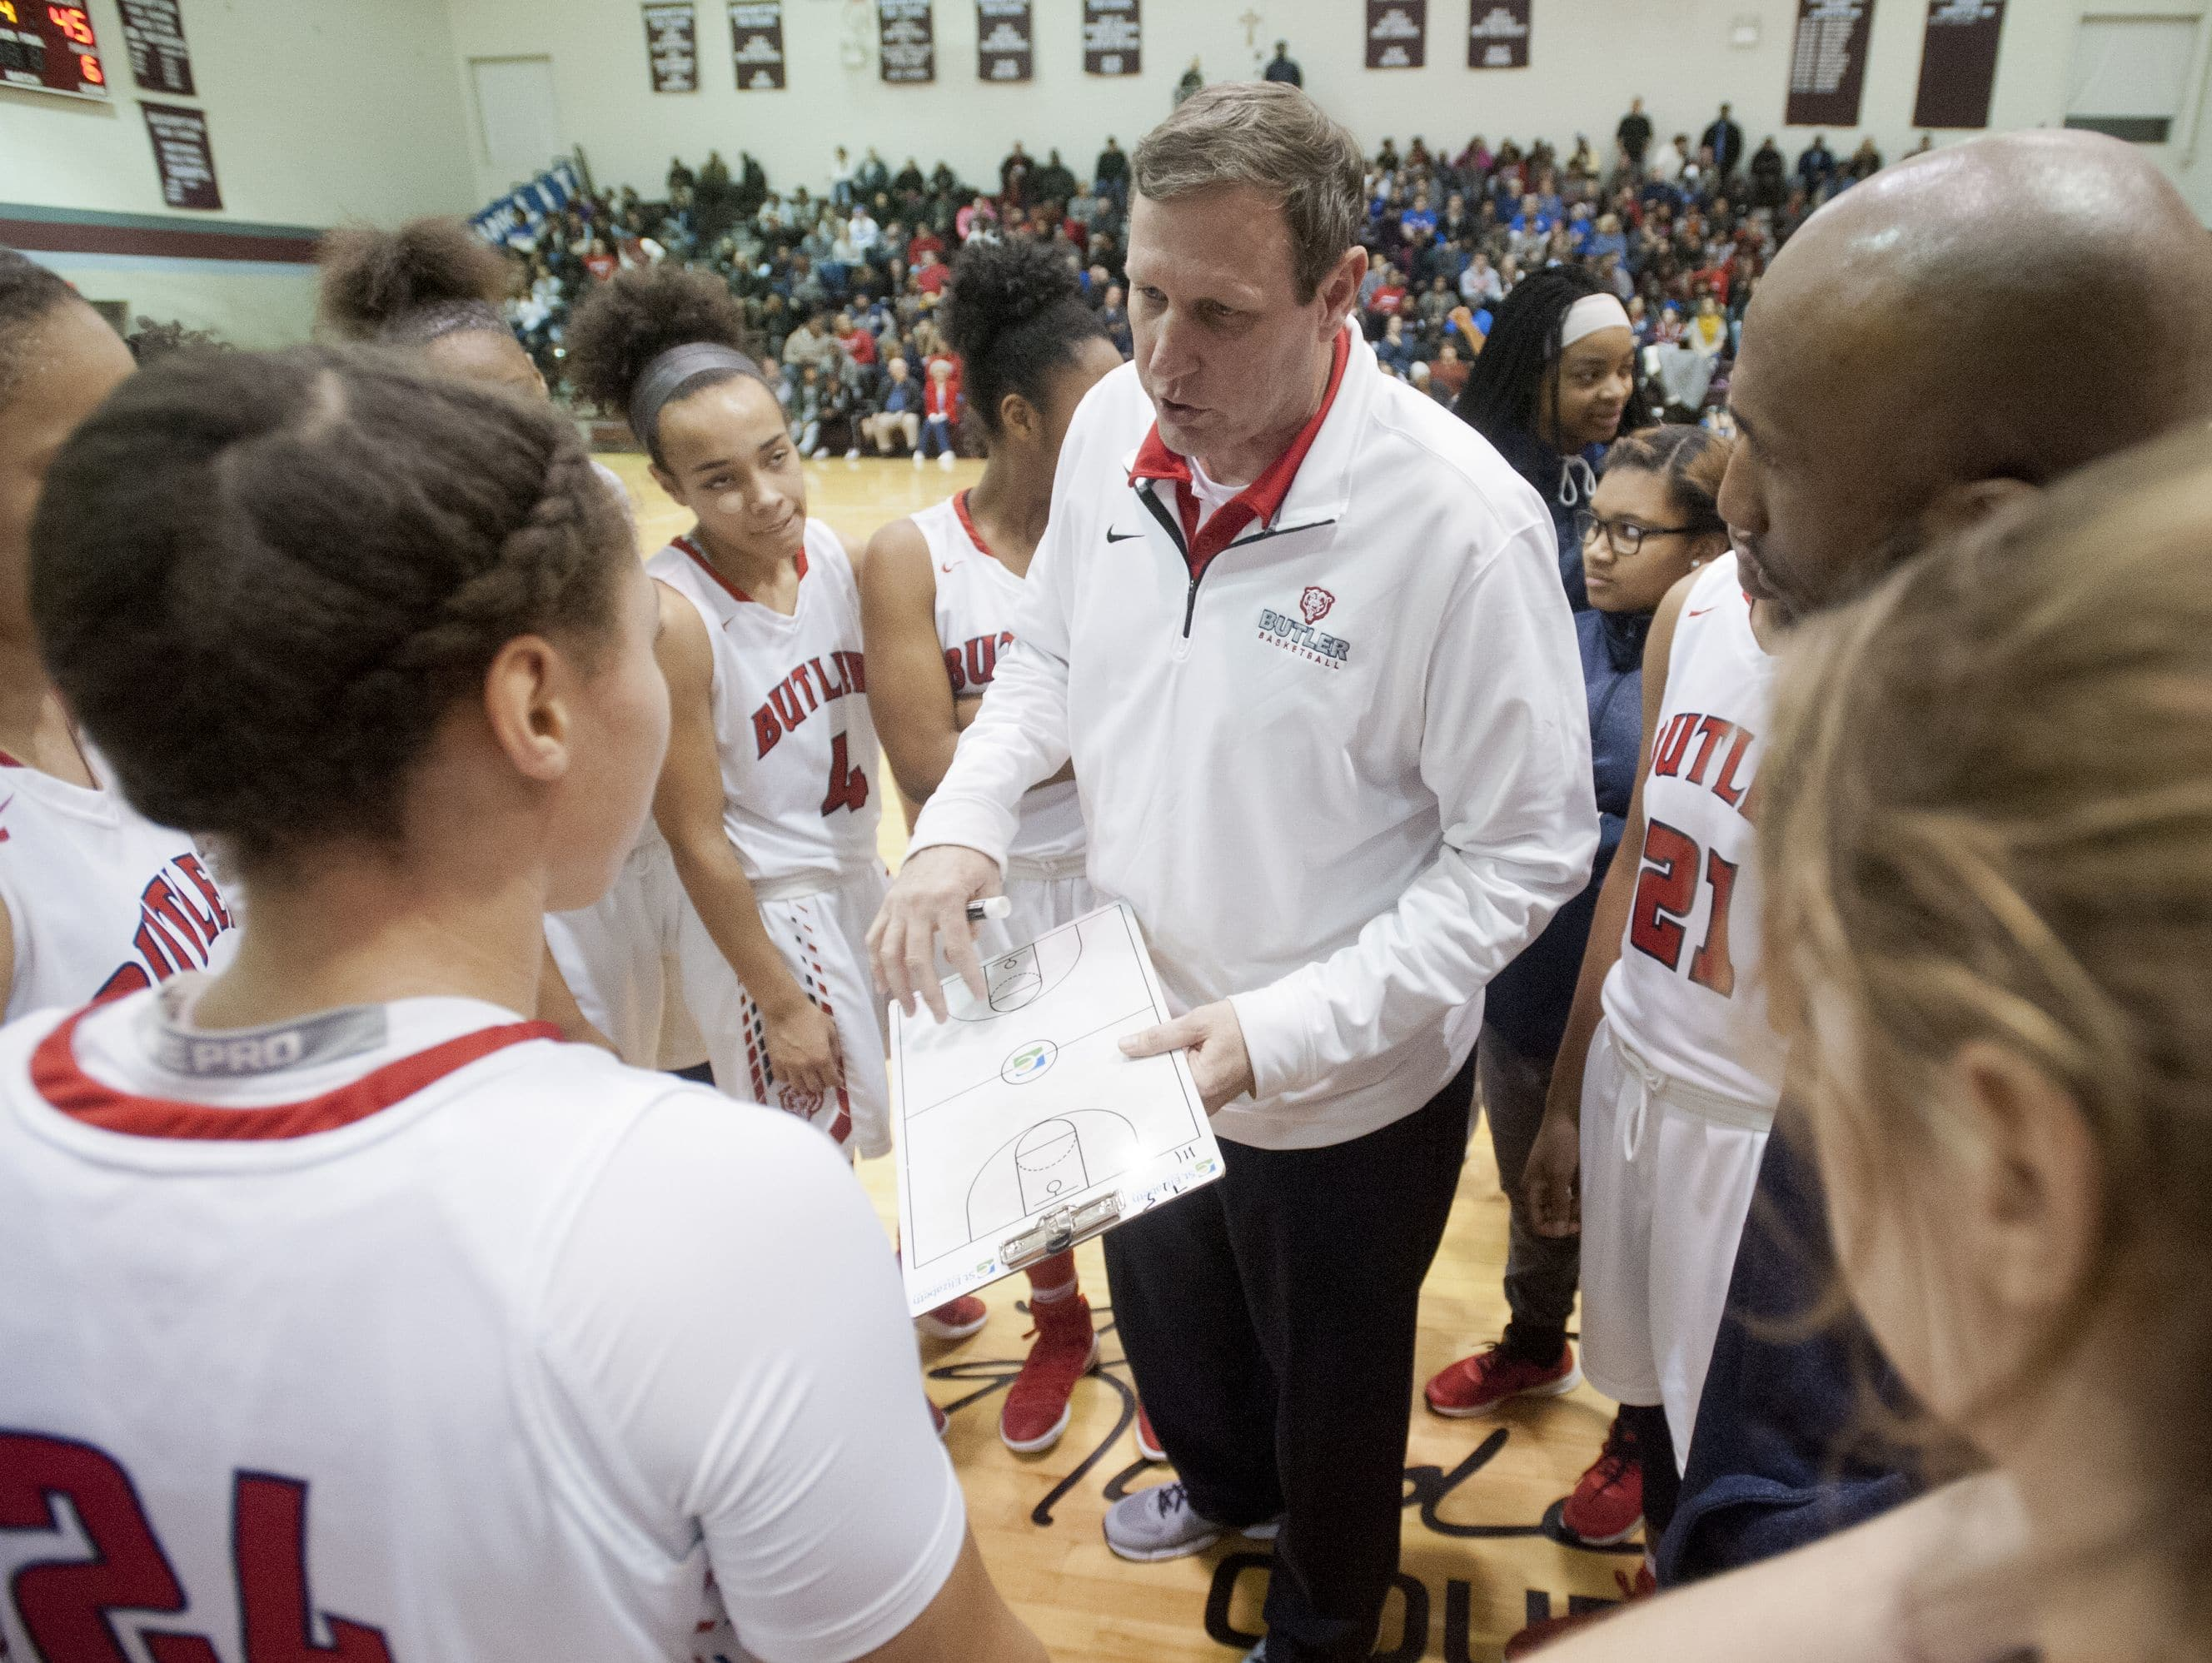 Butler head basketball coach Larry Just charts a play during a time-out in the Girls' LIT championship. 28 January 2017